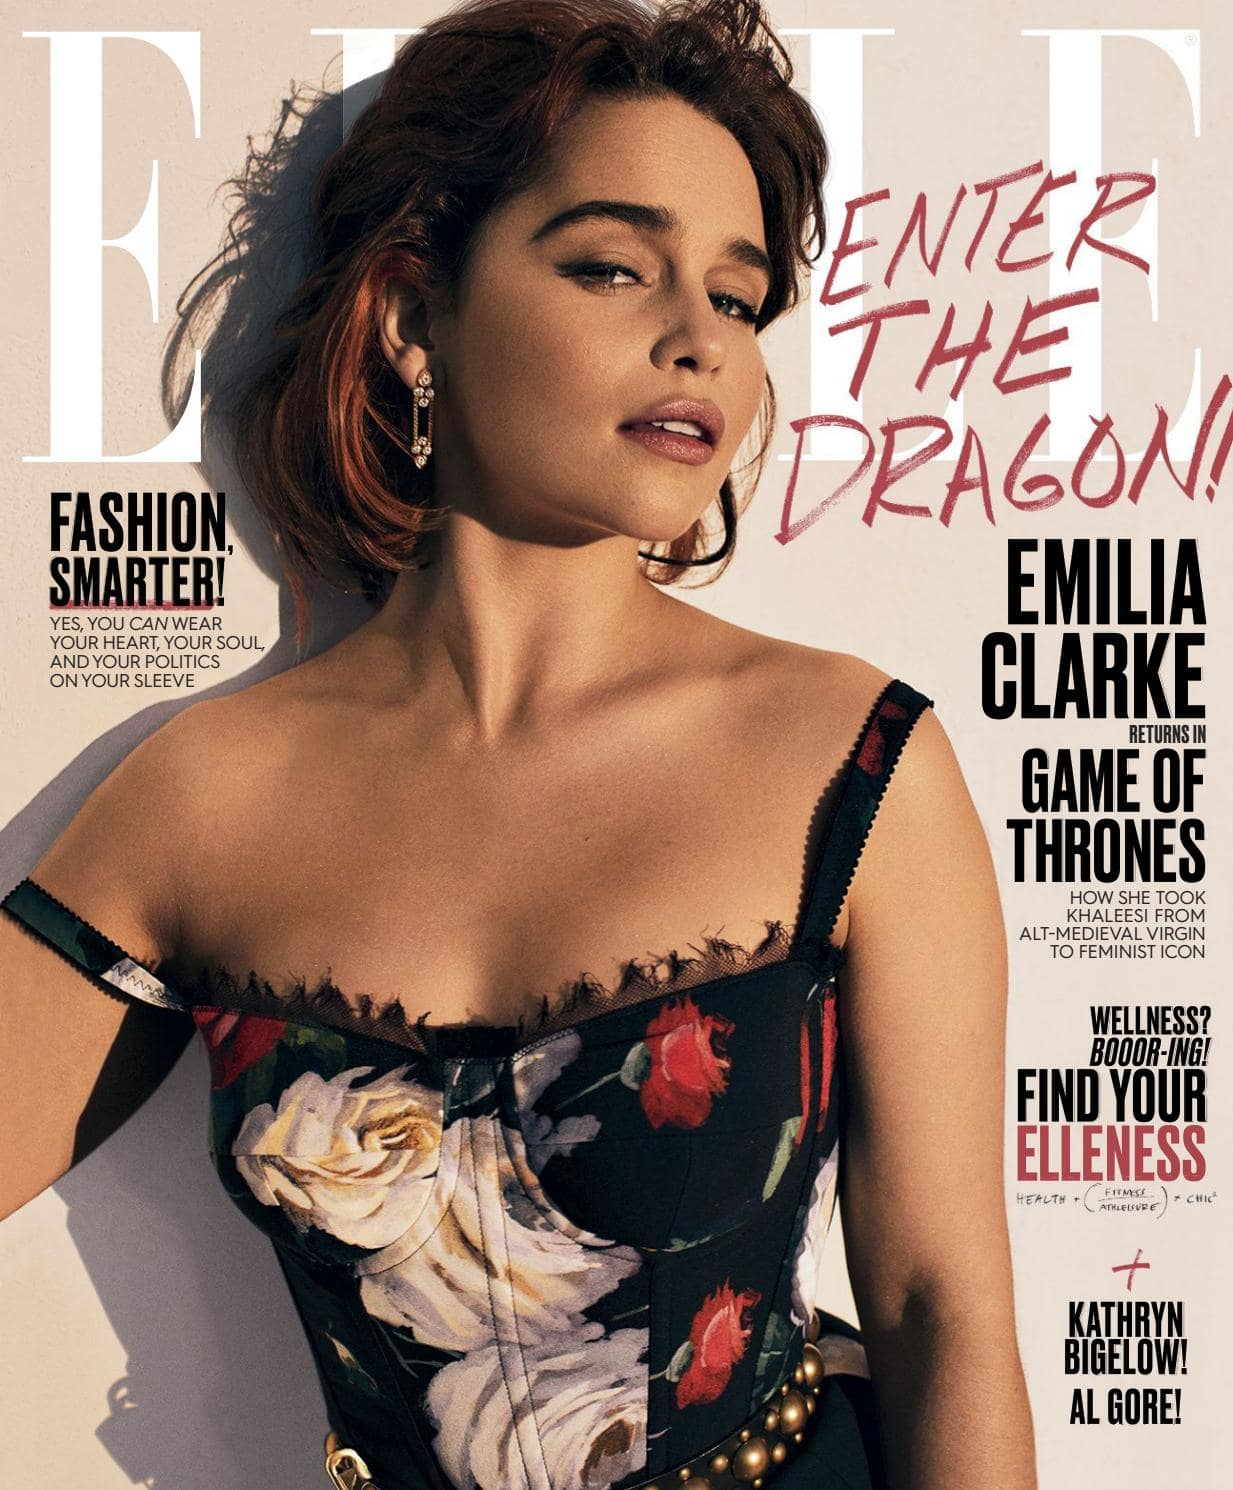 emilia clarke looking hot